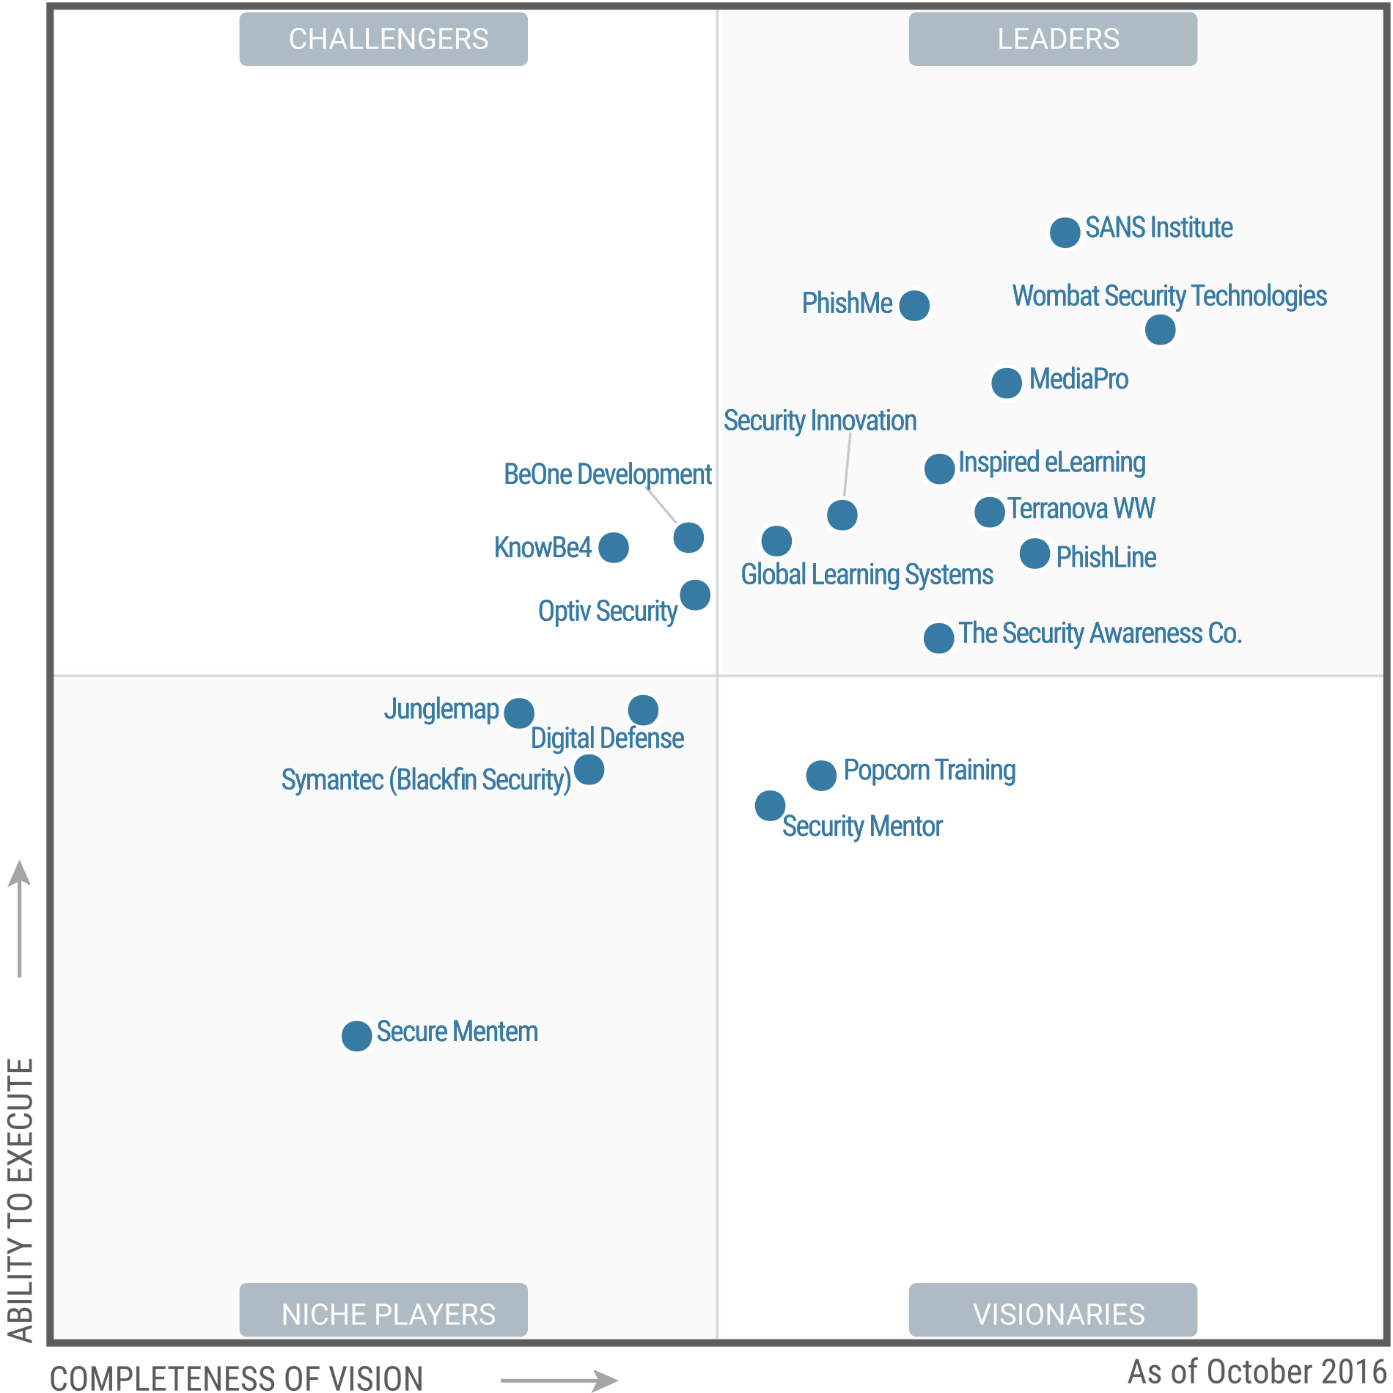 Magic Quadrant for Security Awareness Computer-Based Training 2016 (G00293102)